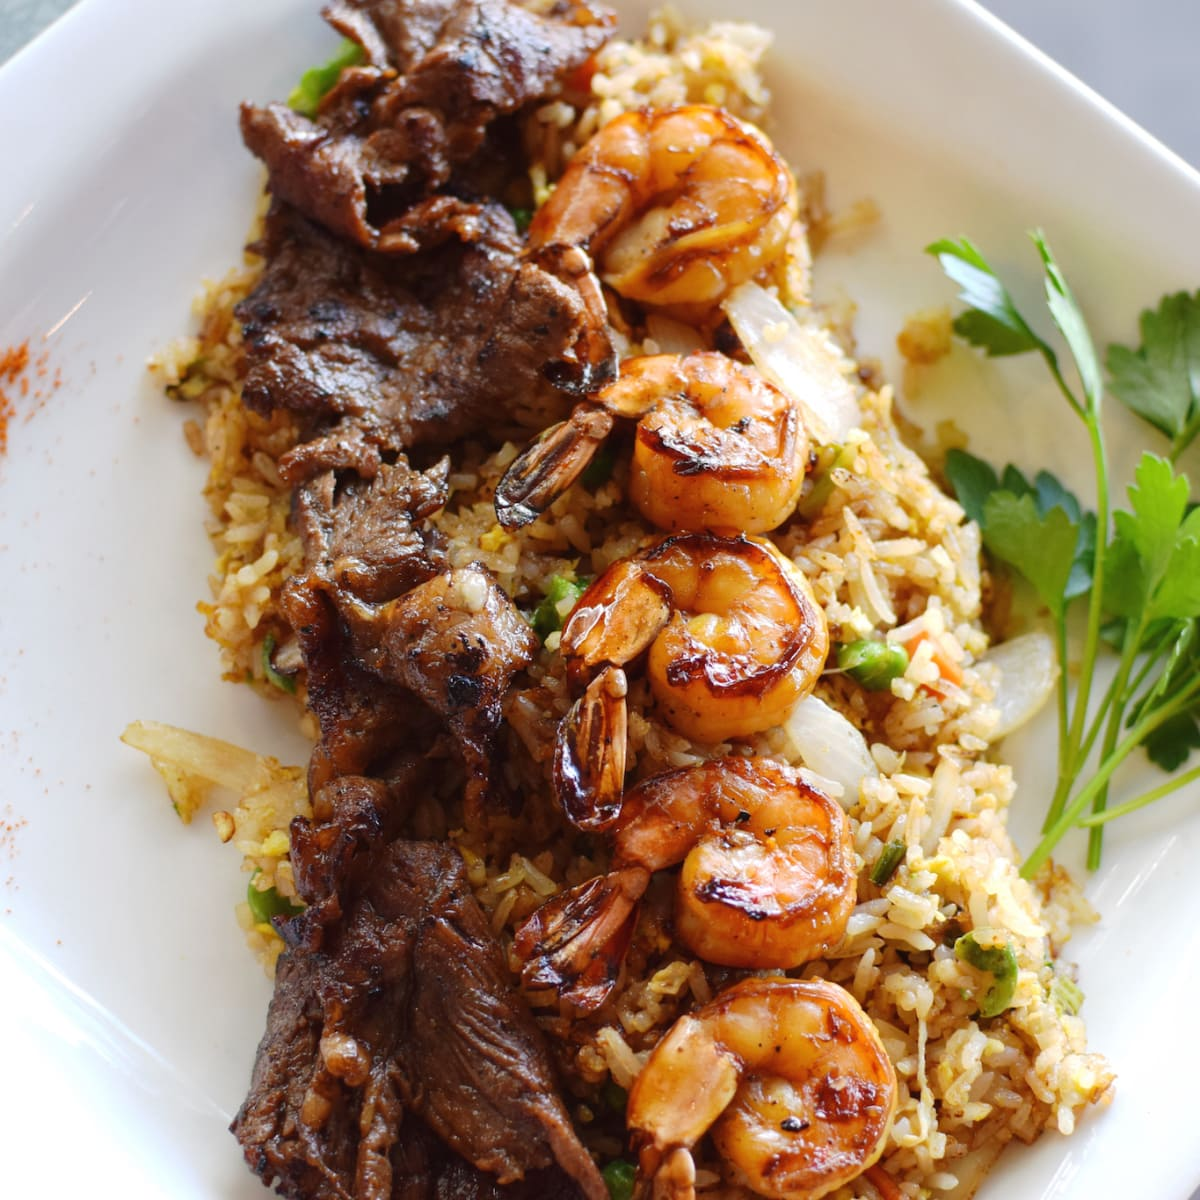 Saigon House stir fried rice with shrimp and steak